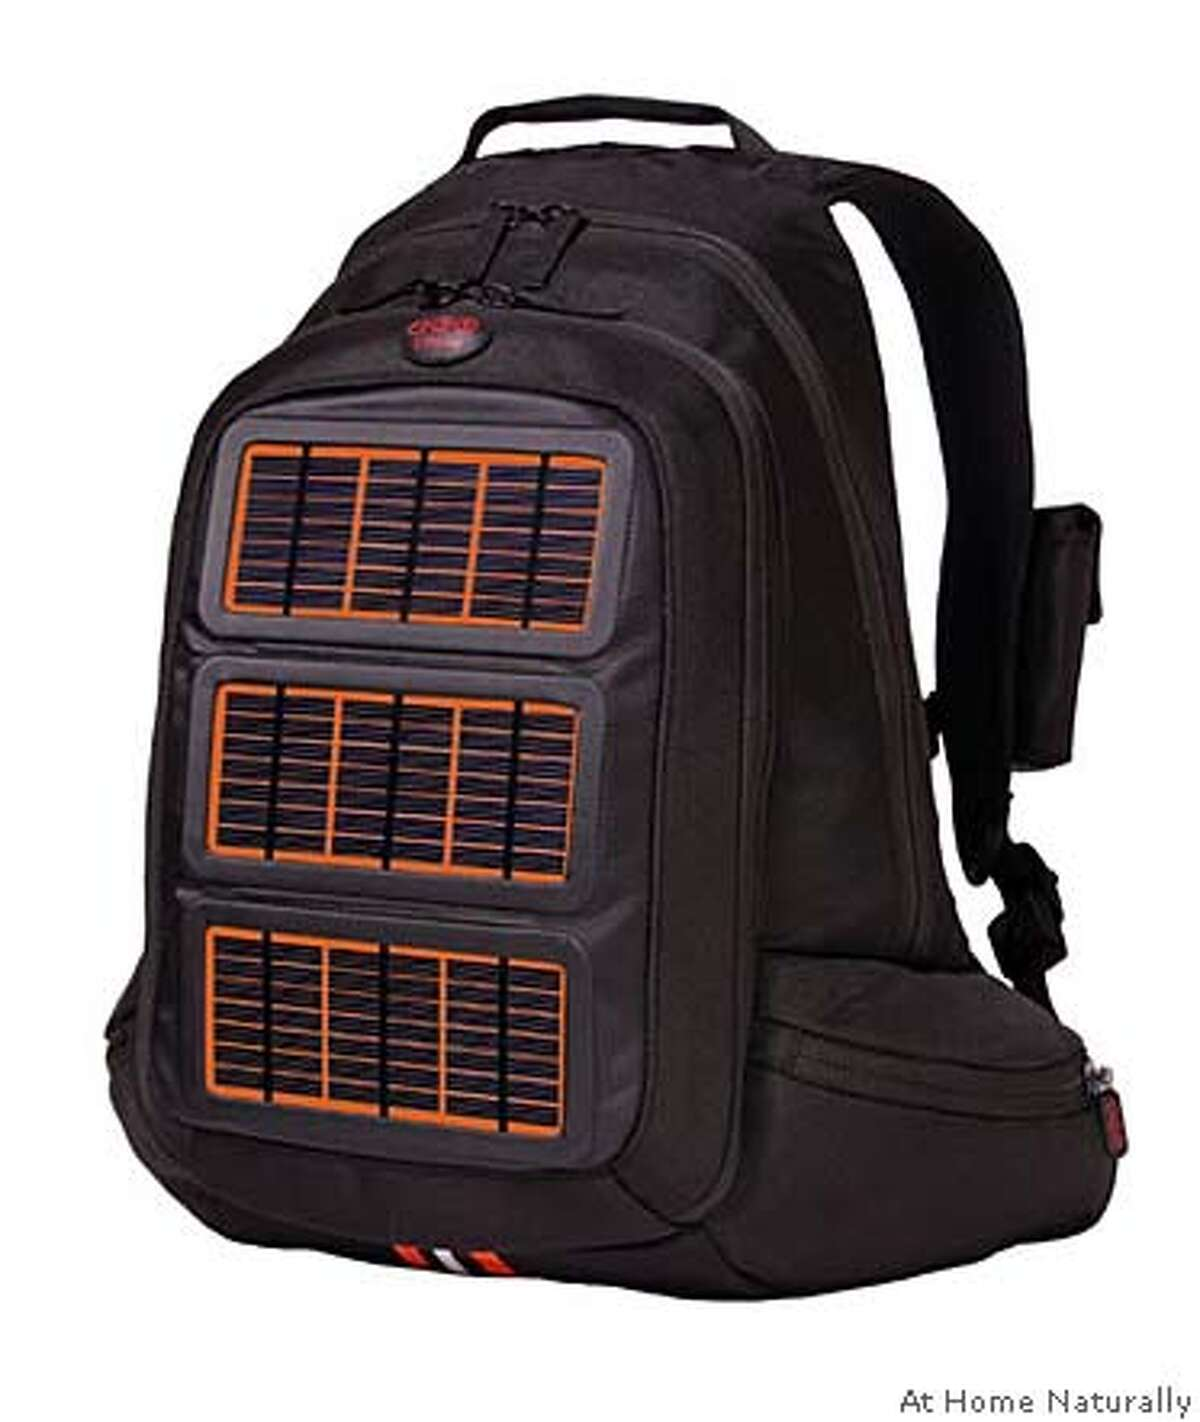 ###Live Caption:Solar backpack from www.athomenaturally.com###Caption History:Solar backpack from www.athomenaturally.com###Notes:###Special Instructions: